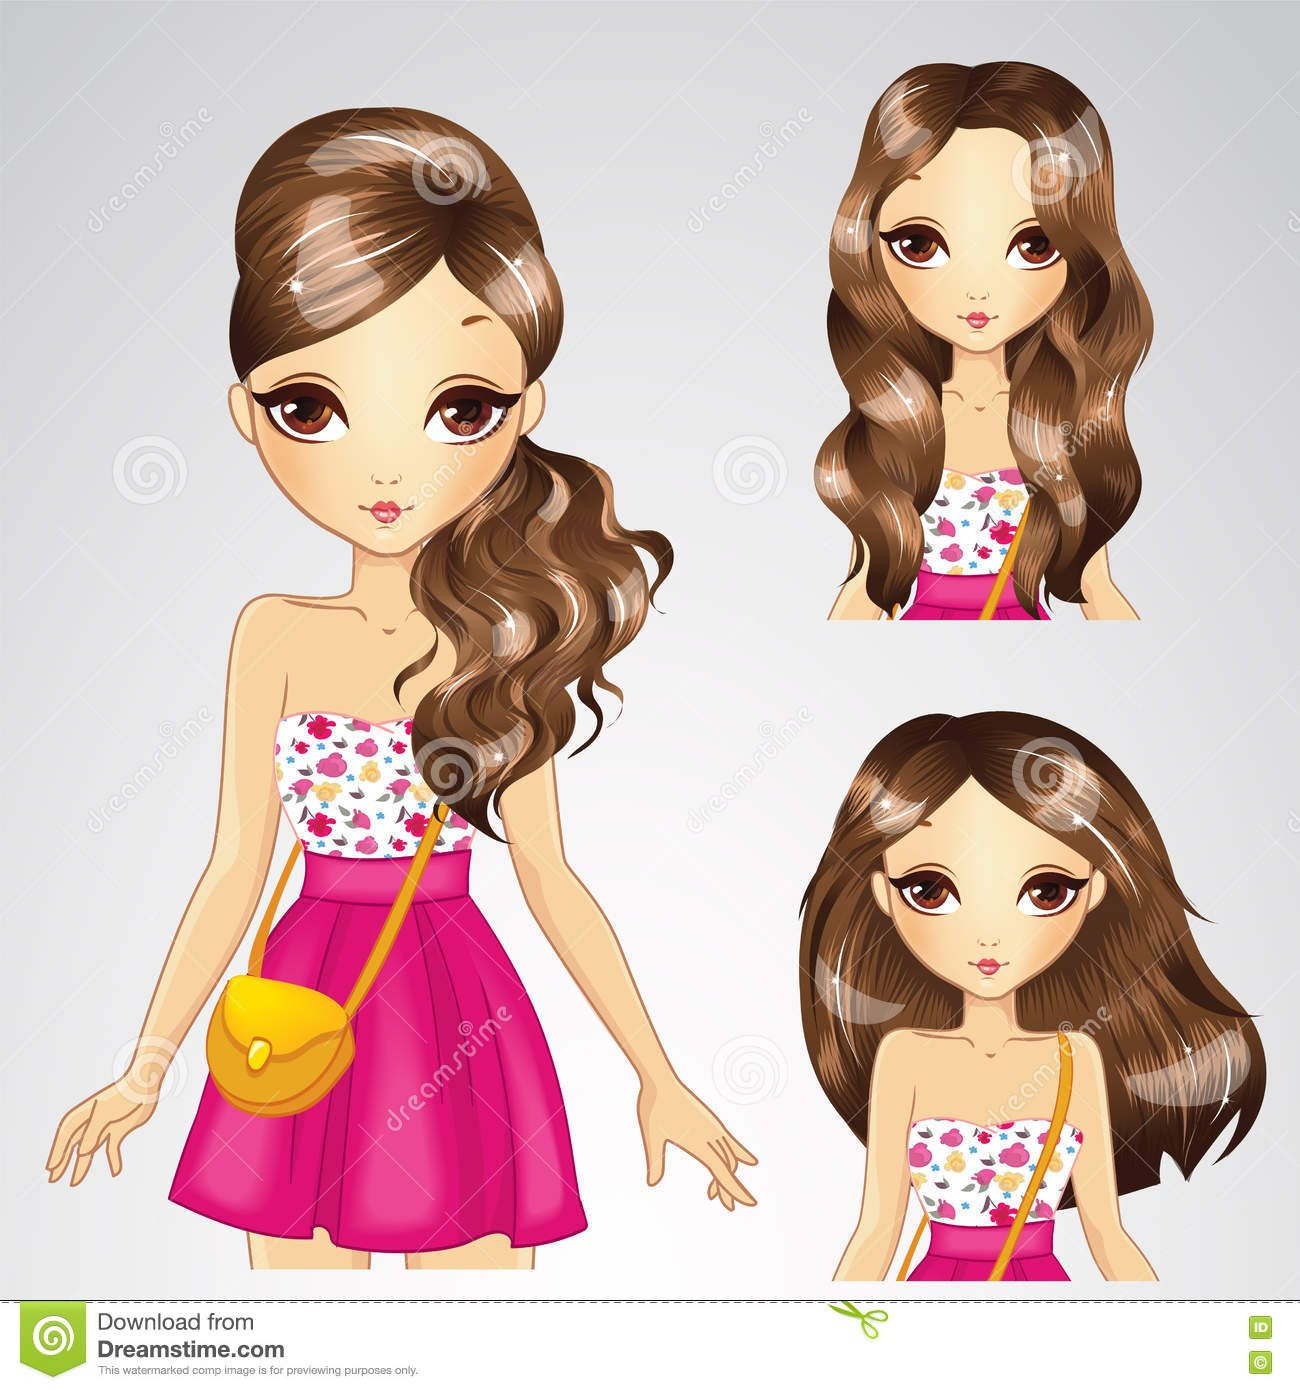 girl-pink-skirt-collection-hairstyle-vector-illustration-brunette-different-hairstyles-73121824.jpg (1300×1390)